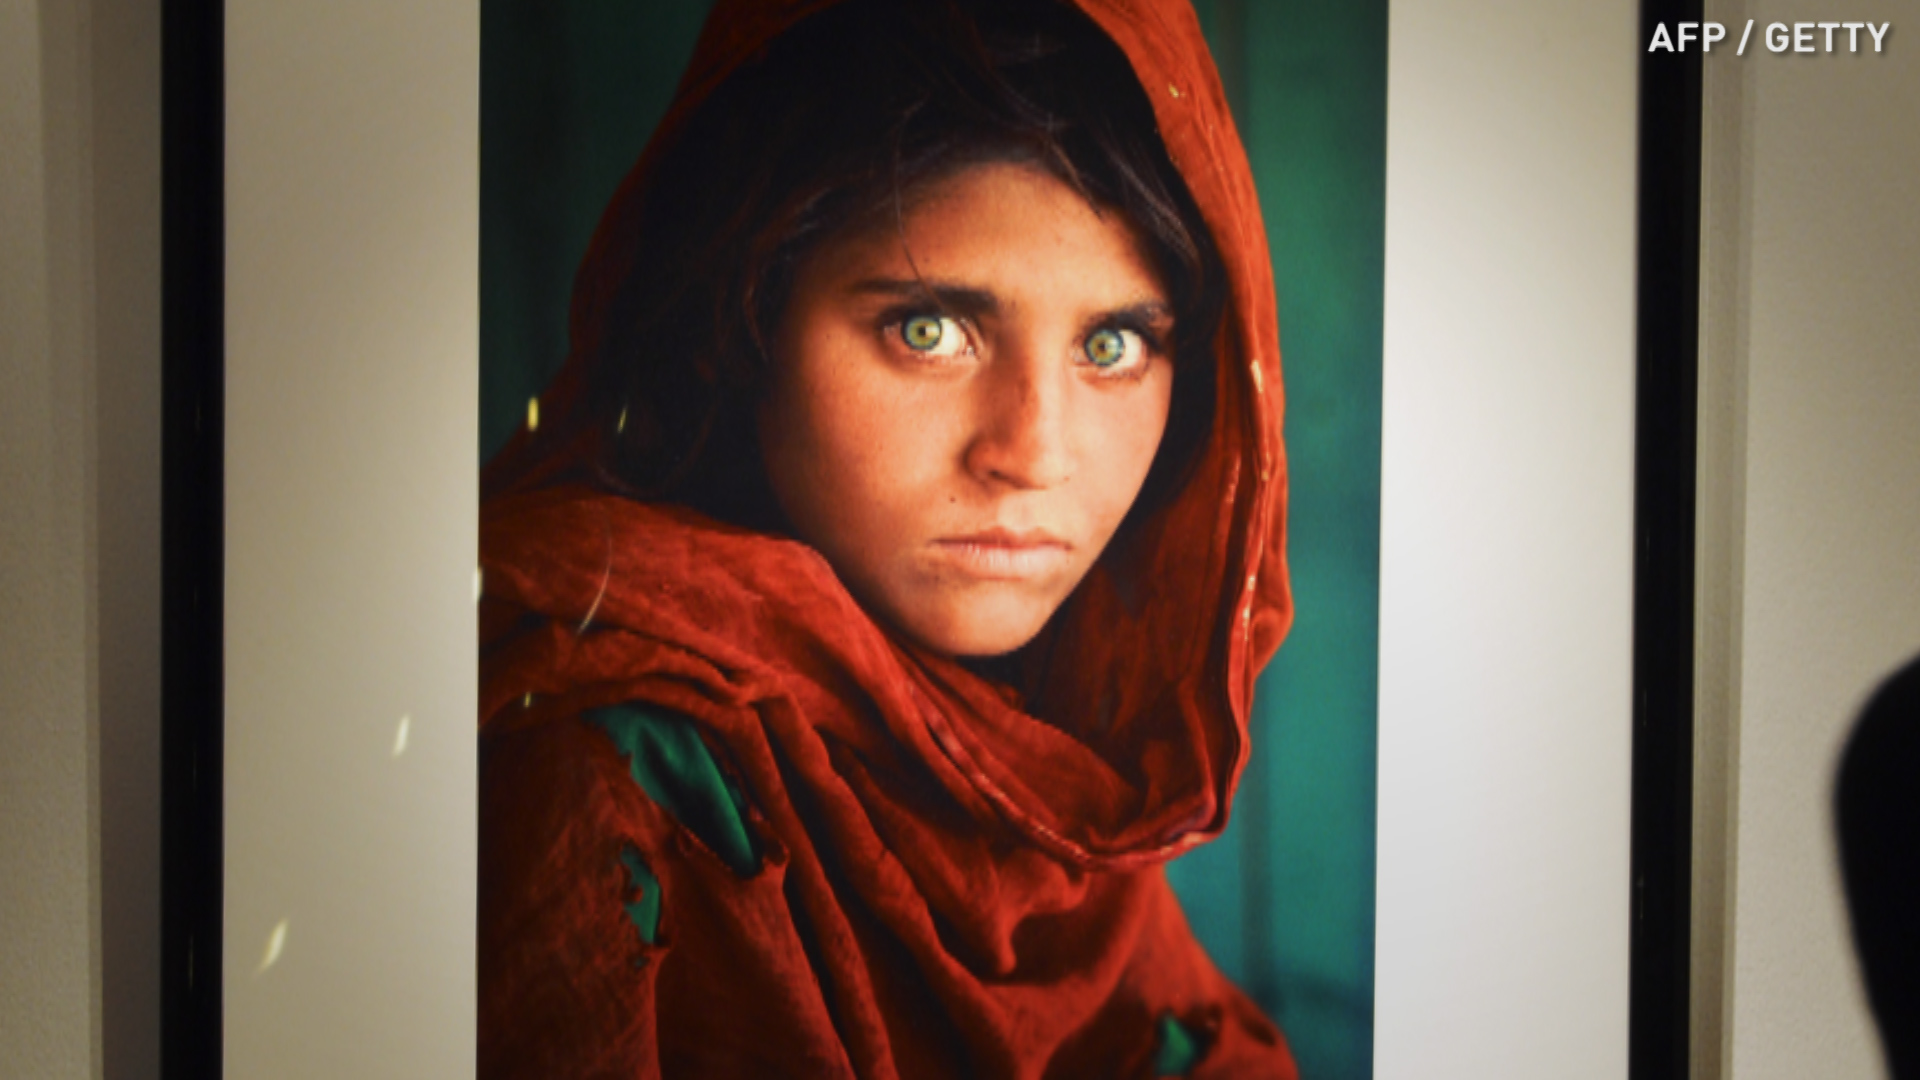 Sharbat Gula became the face of refugee plight when she was featured on the cover of 'National Geographic' as a child. Her struggles are far from over.